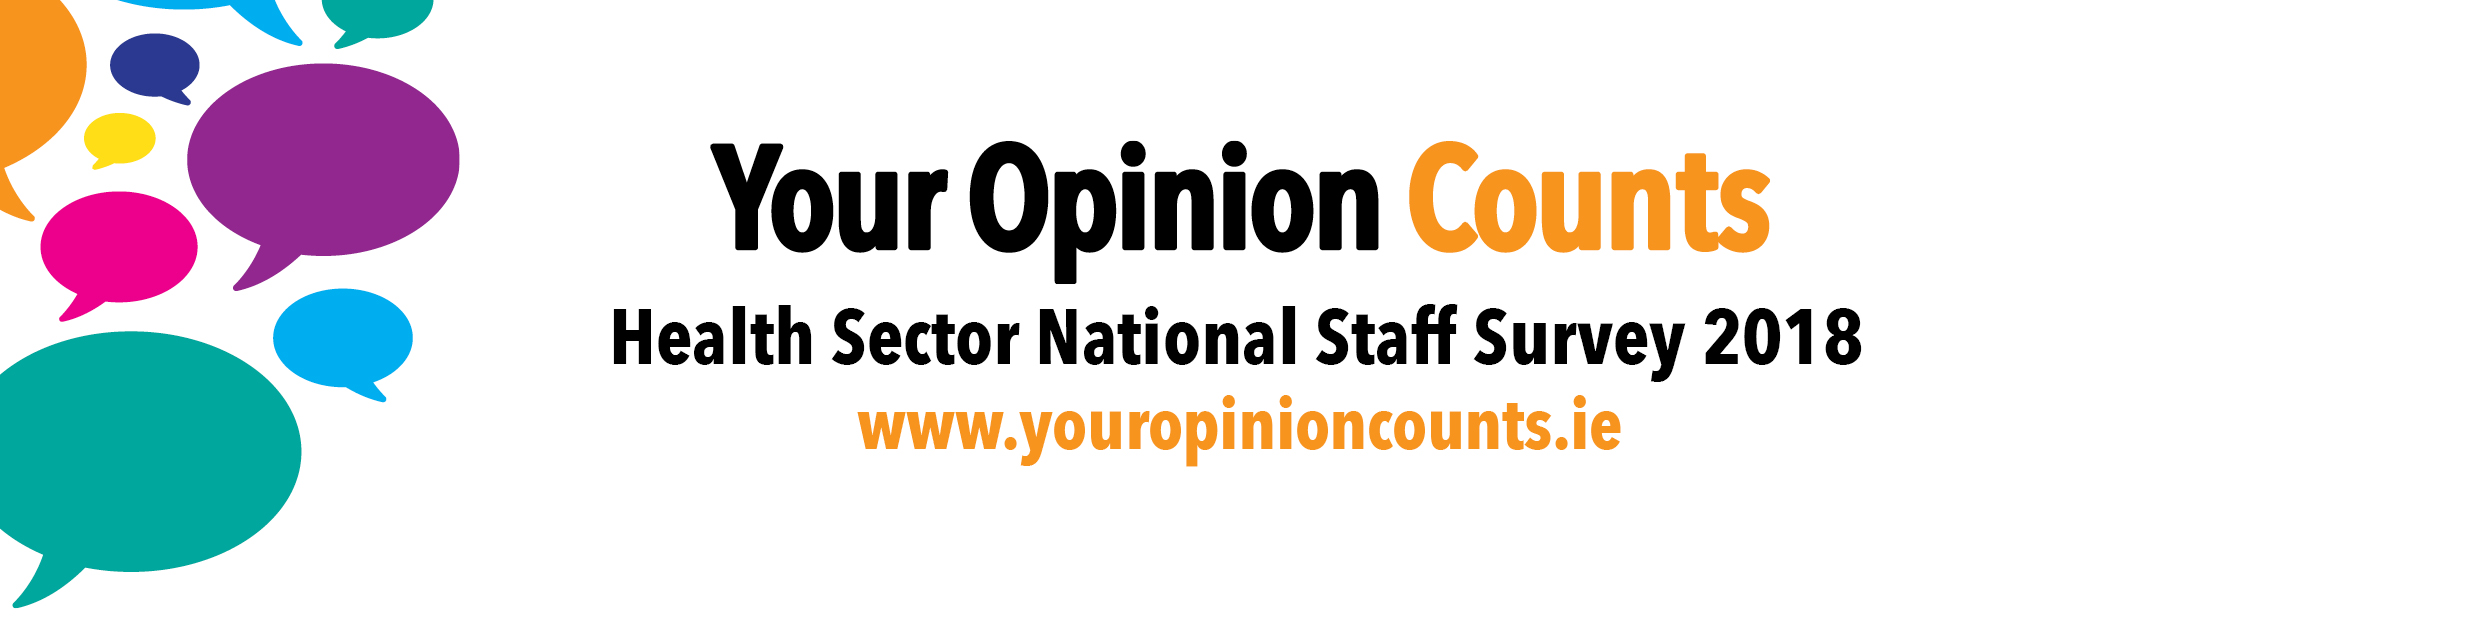 Your Opinion Counts header